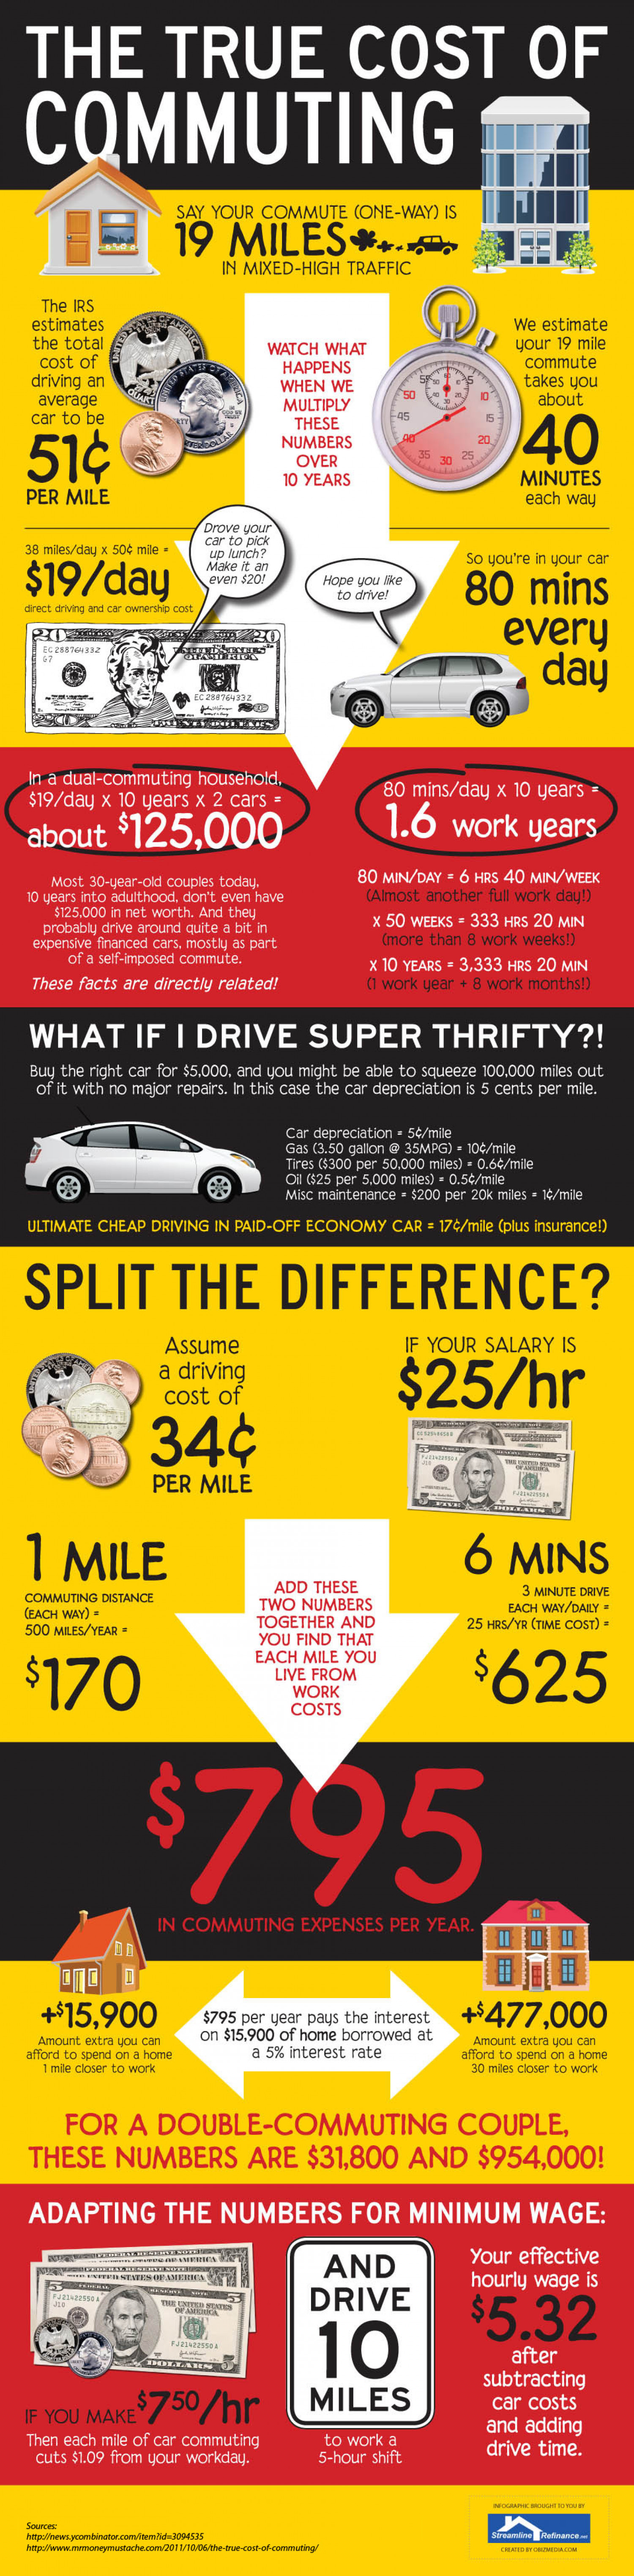 The True Cost of Commuting Infographic